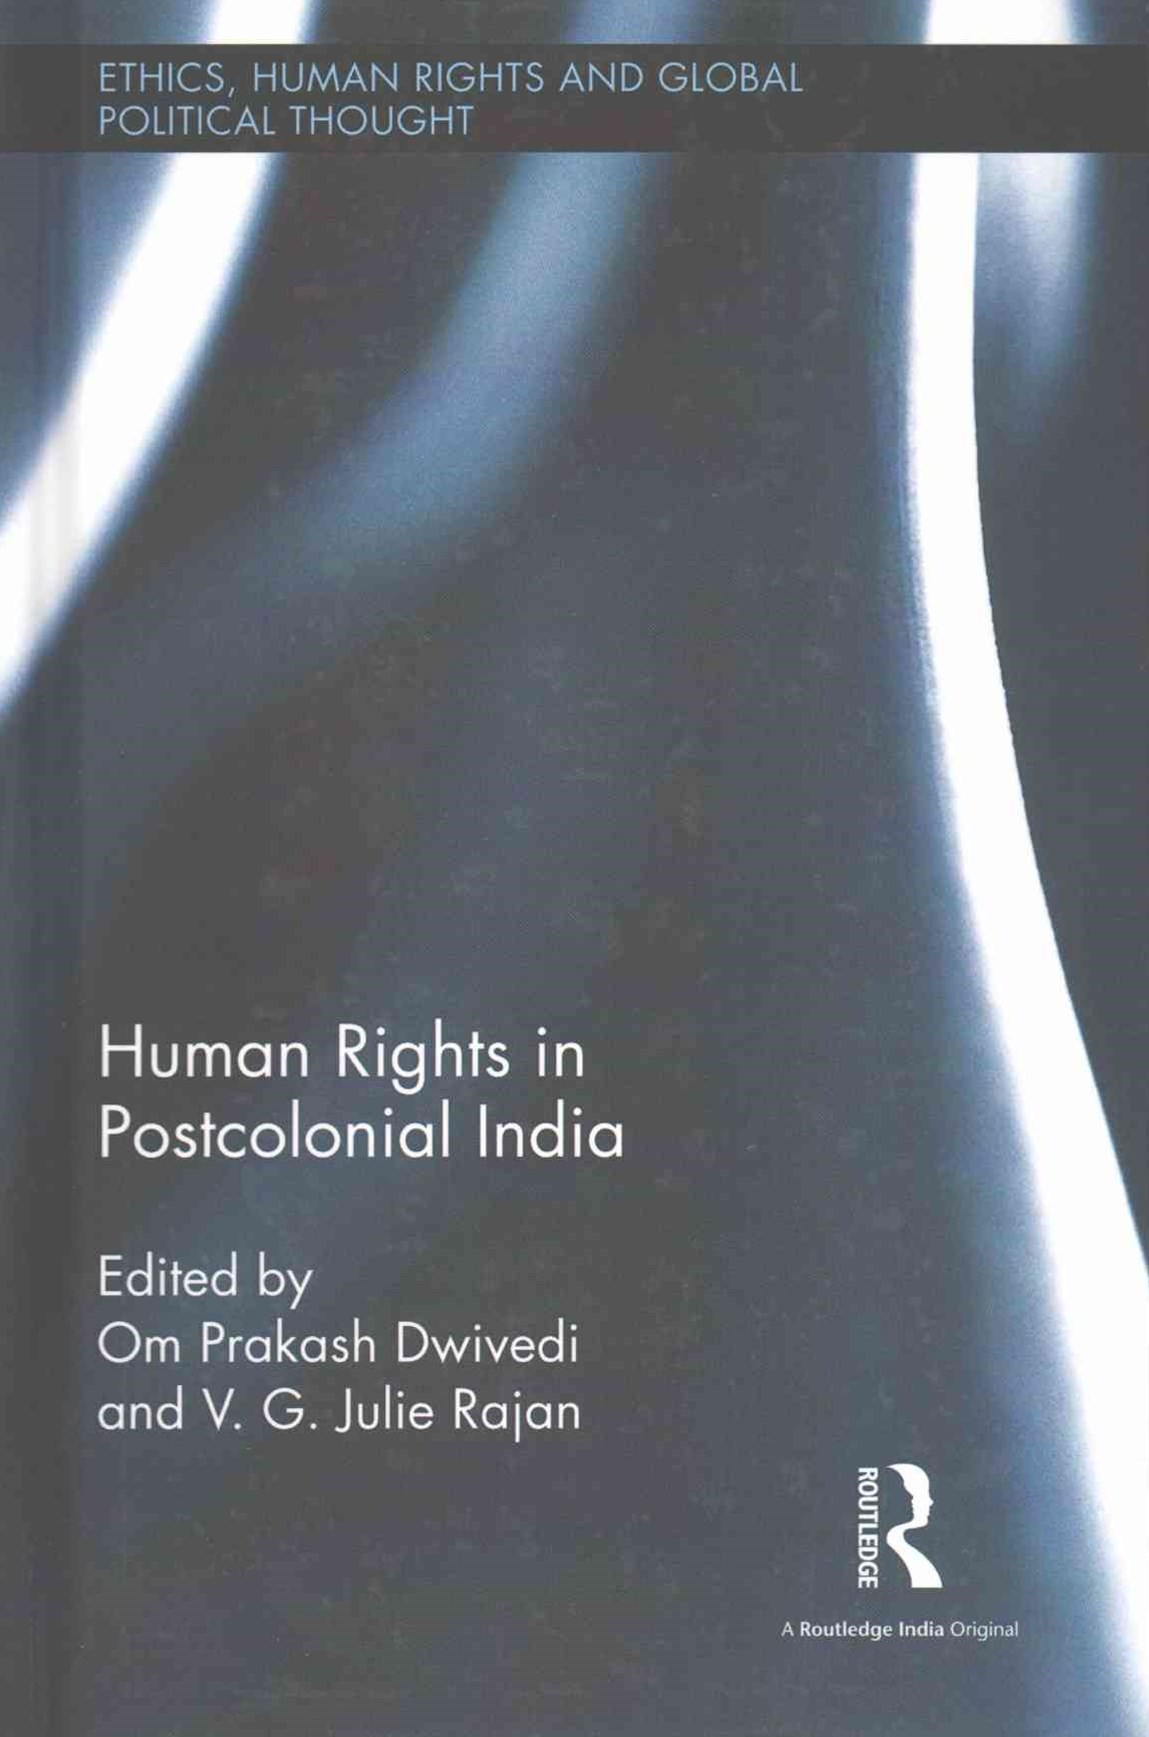 Human Rights in Postcolonial India